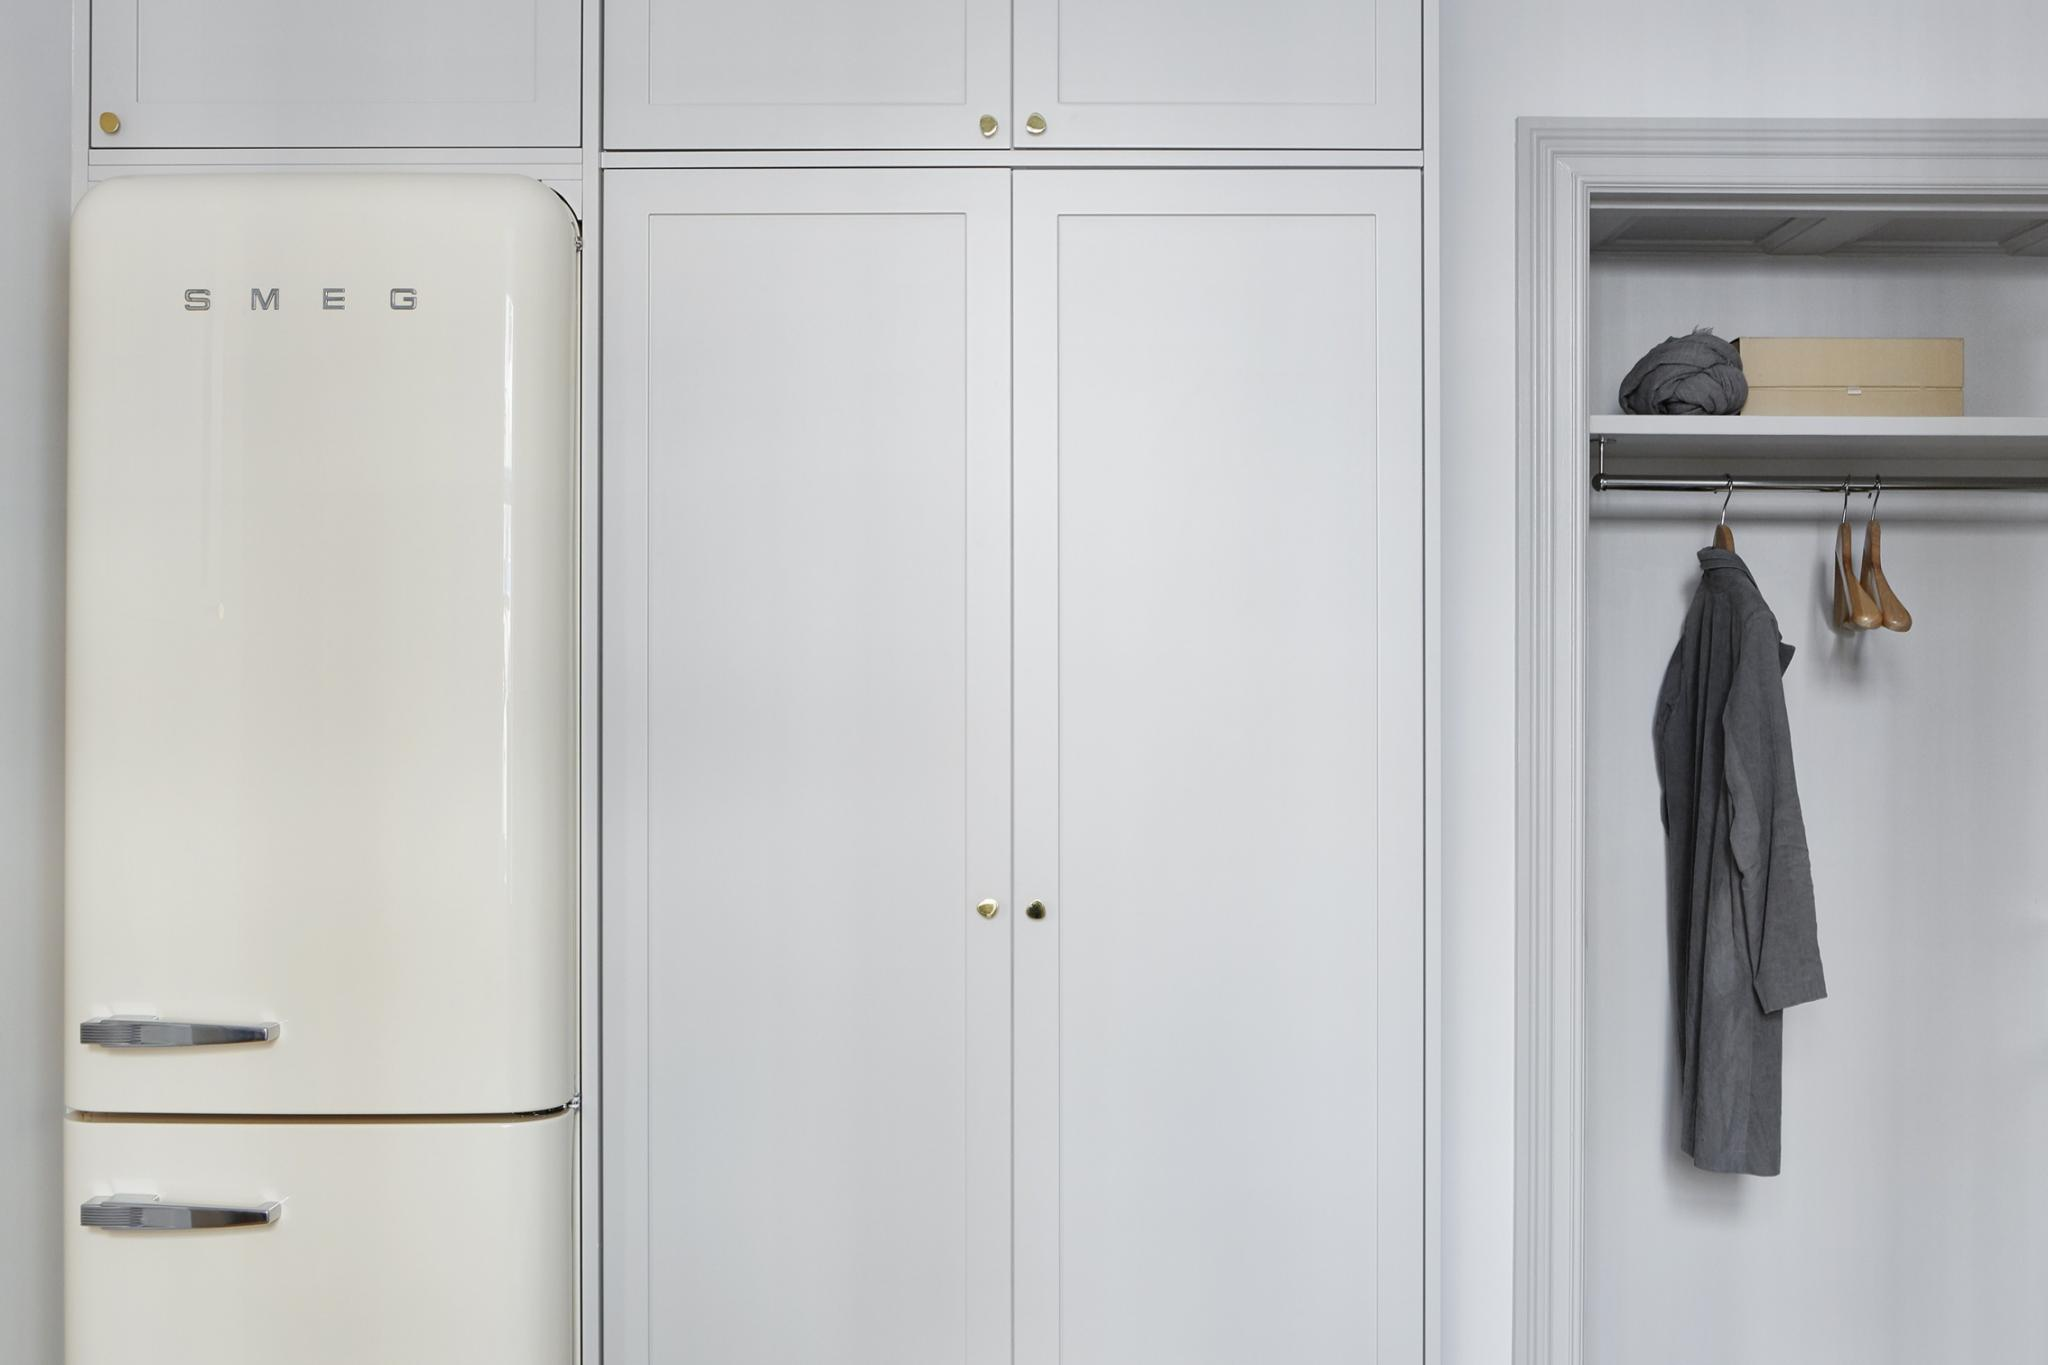 Charming Smeg frig built into cabinetry in small Stockholm apartment